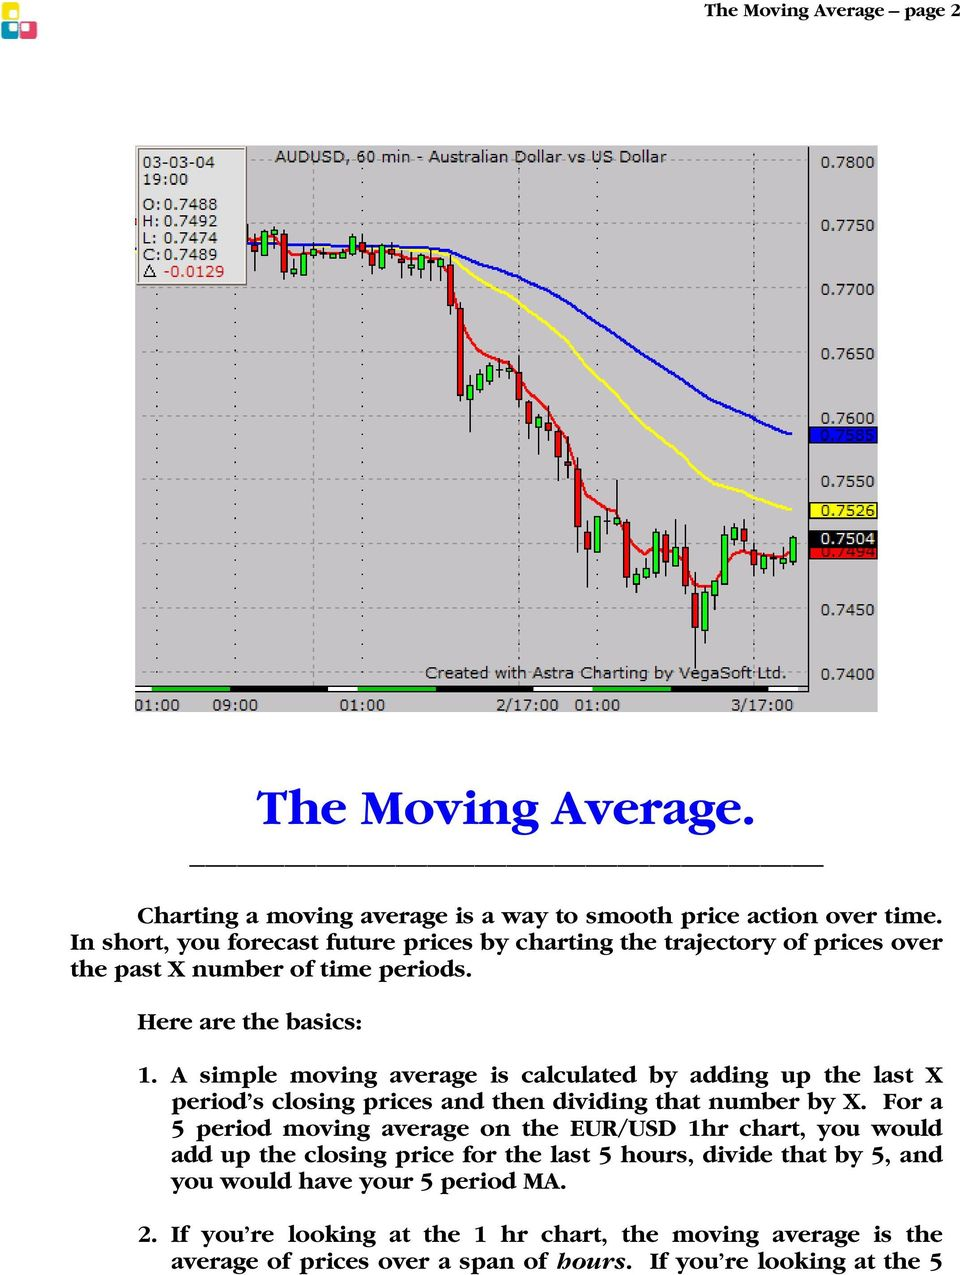 A simple moving average is calculated by adding up the last X period s closing prices and then dividing that number by X.